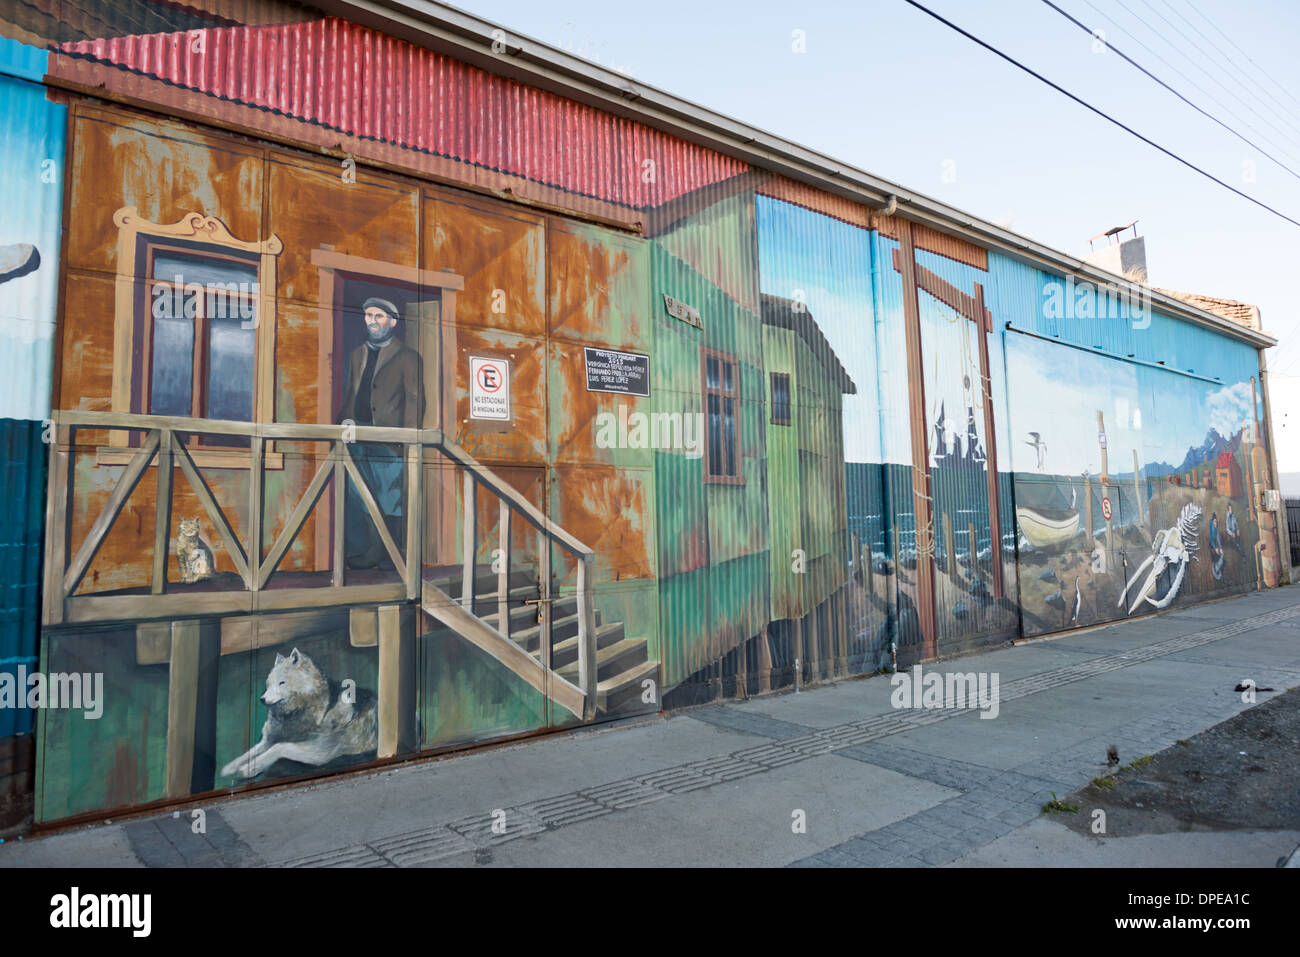 PUNTA ARENAS, Chile - Large painted murals paying tribute to the city's maritime history on buildings on the waterfront of Punta Arenas, Chile. The city is the largest south of the 46th parallel south and capital city of Chile's southernmost region of Magallanes and Antartica Chilena. - Stock Image